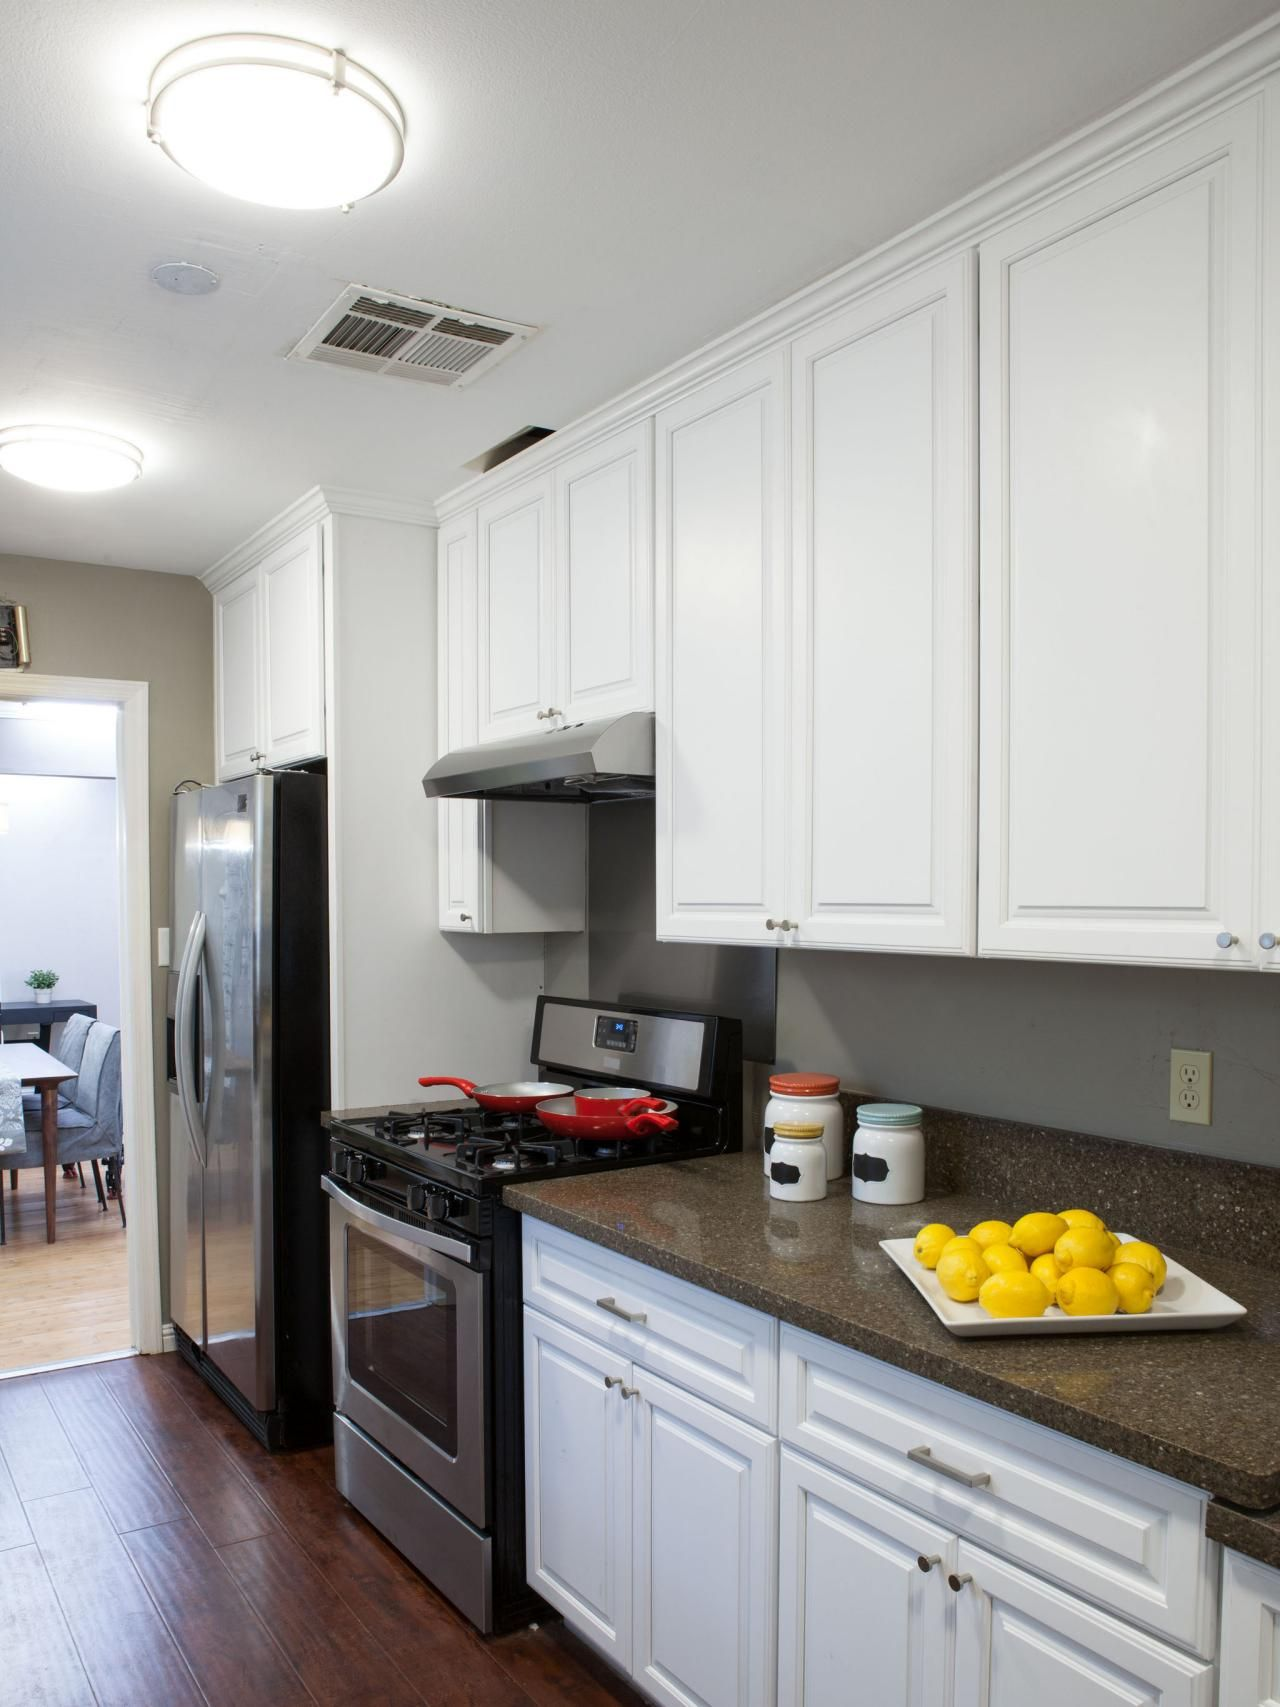 This Simple Galley Kitchen Well Lit And Equipped With